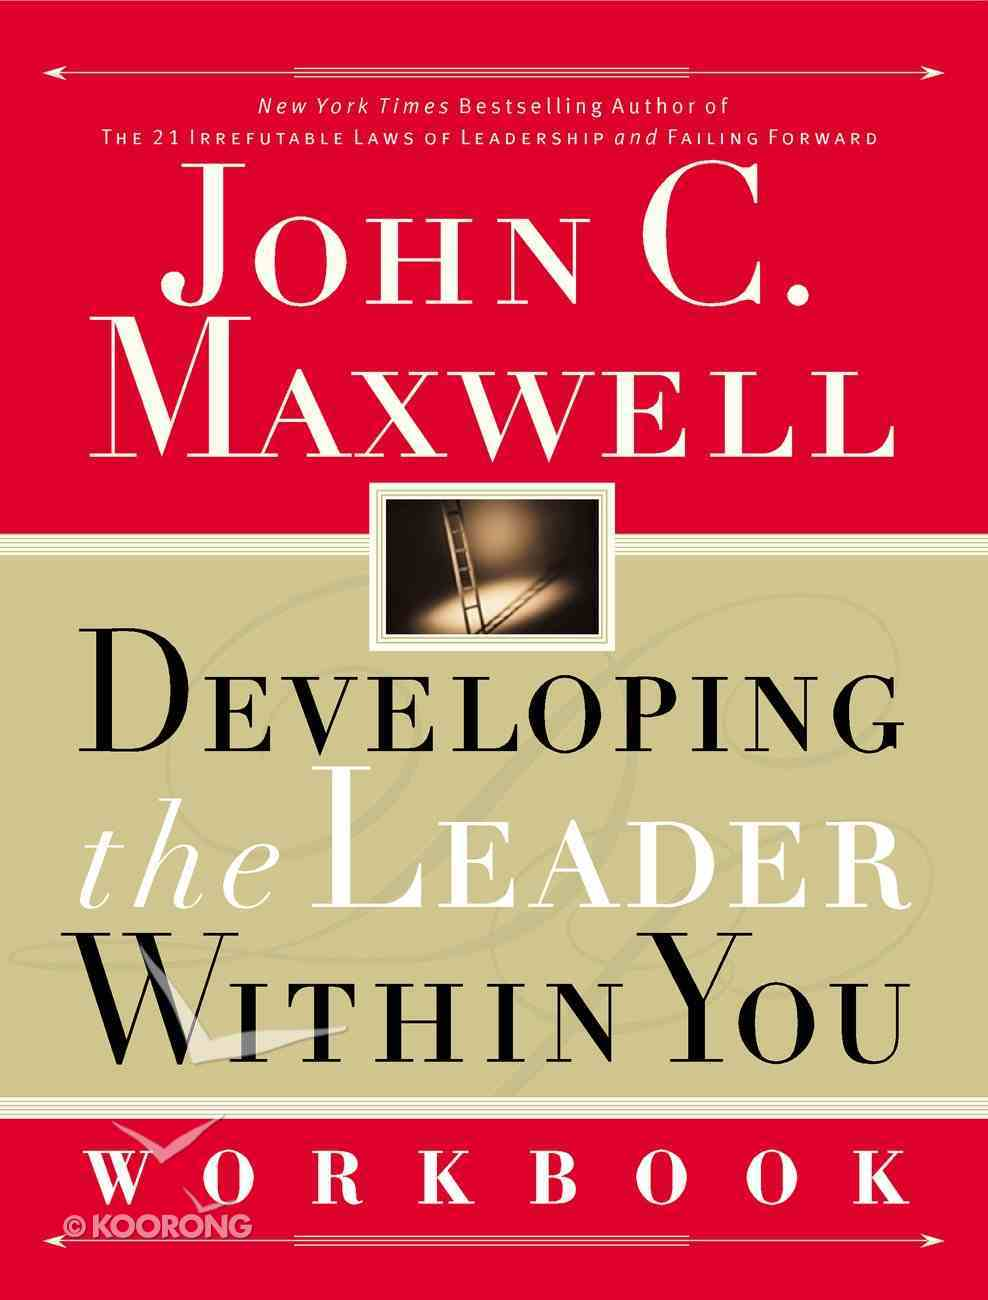 Developing the Leader Within You (Workbook) eBook